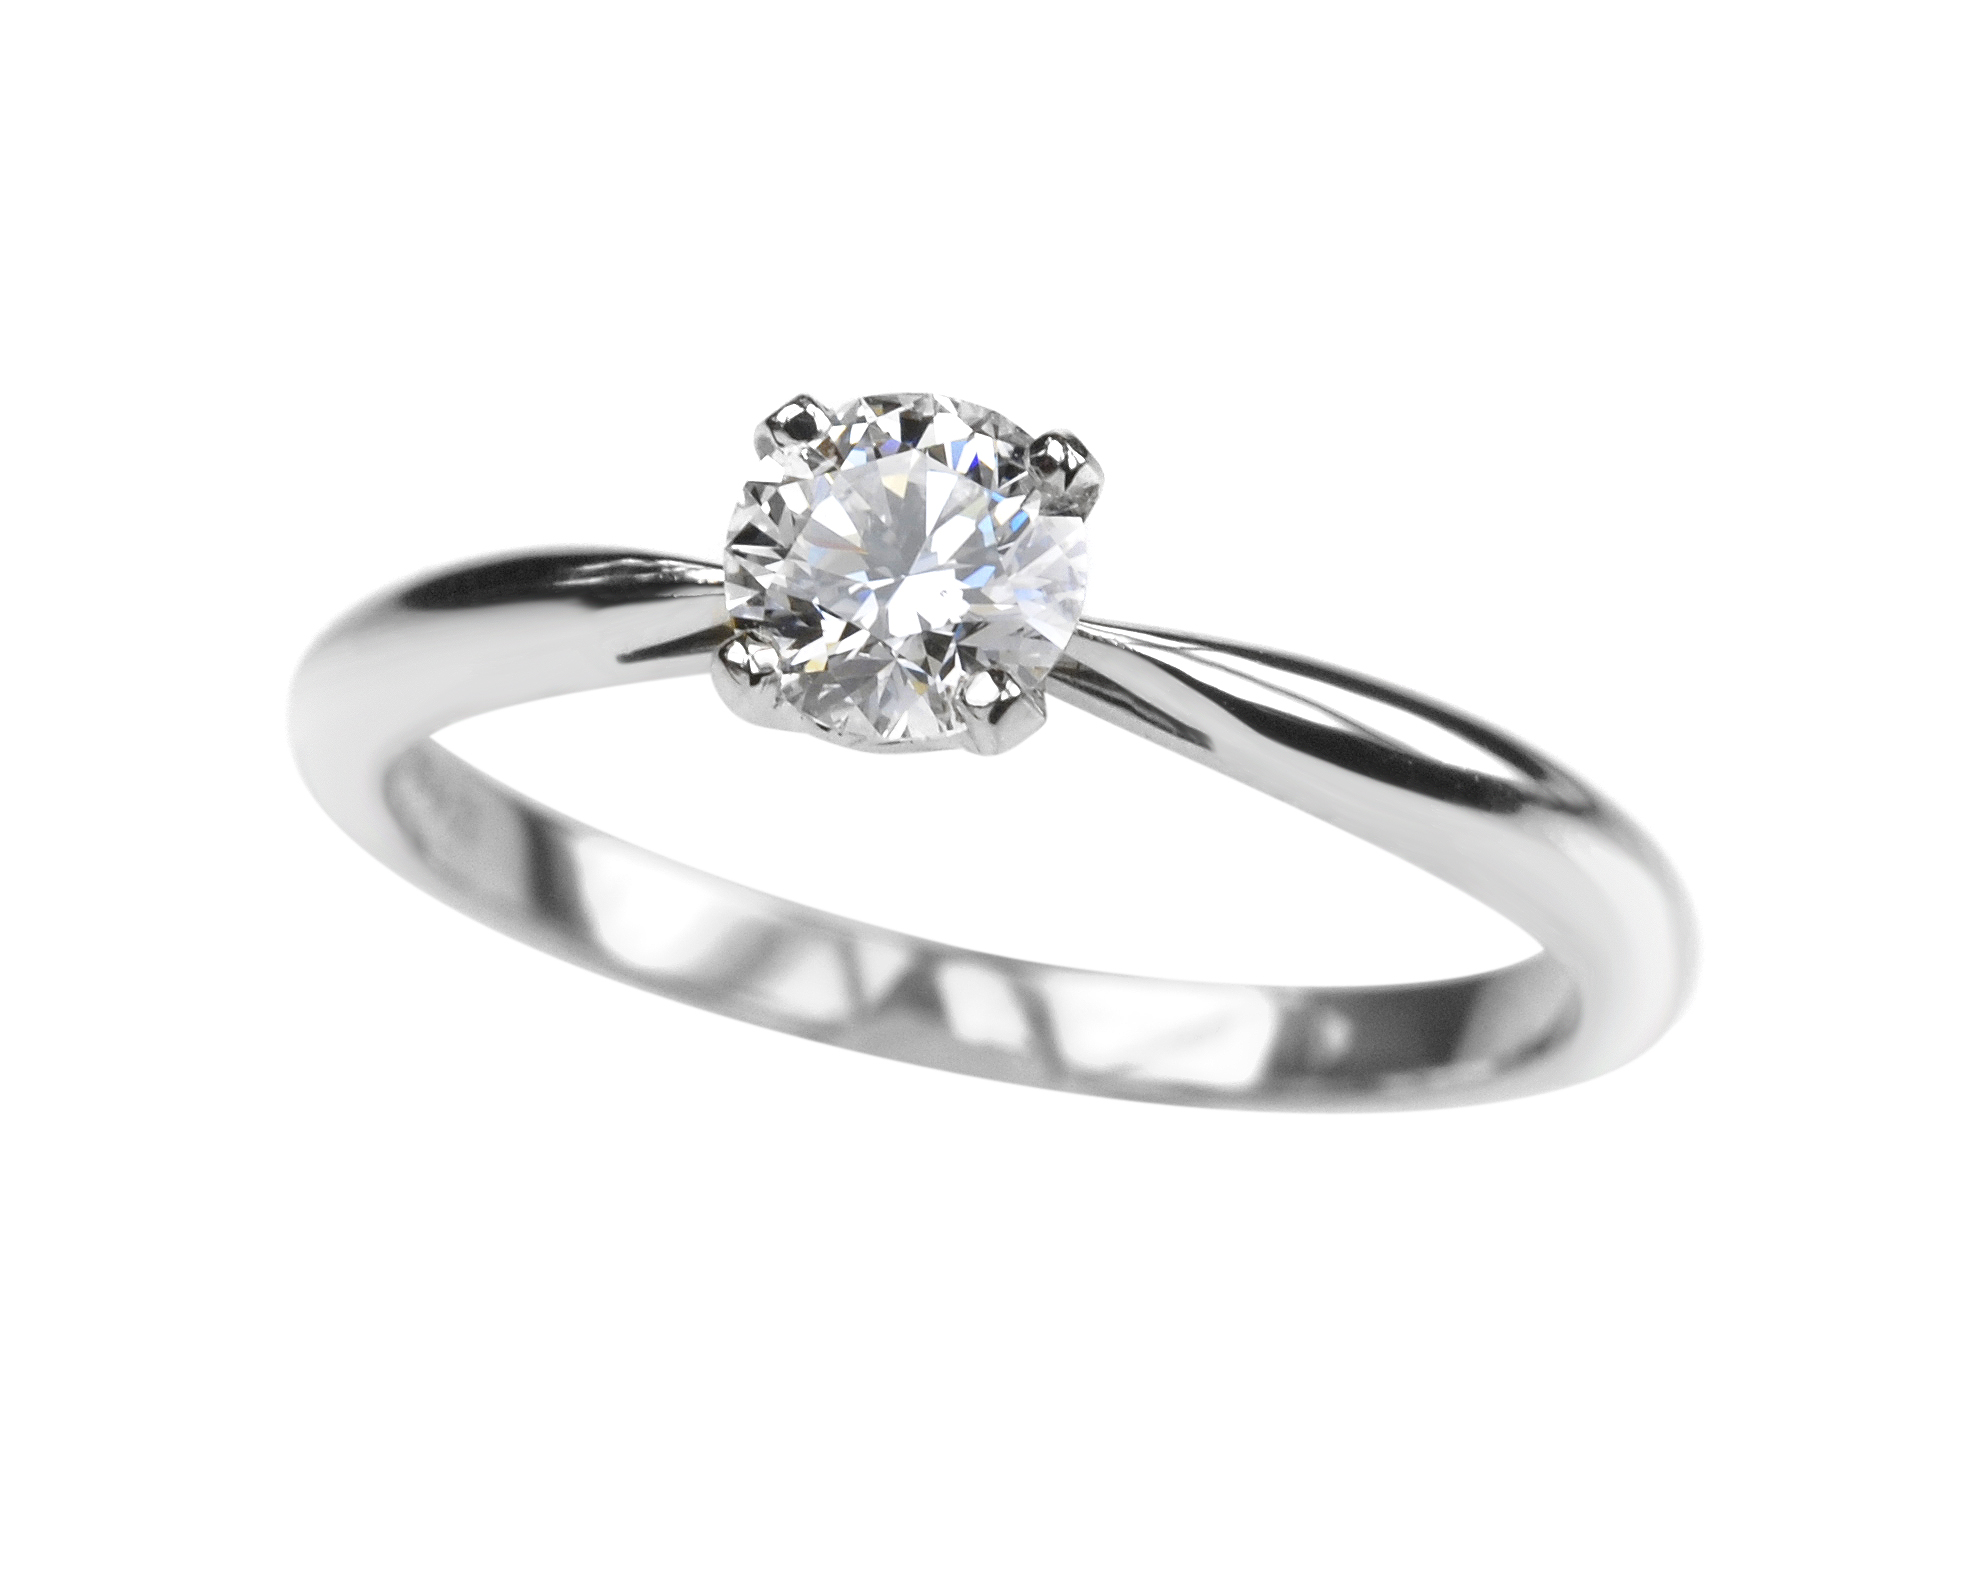 jewellery greenwich margot st jewelers engagement erika rings diamond ring winters